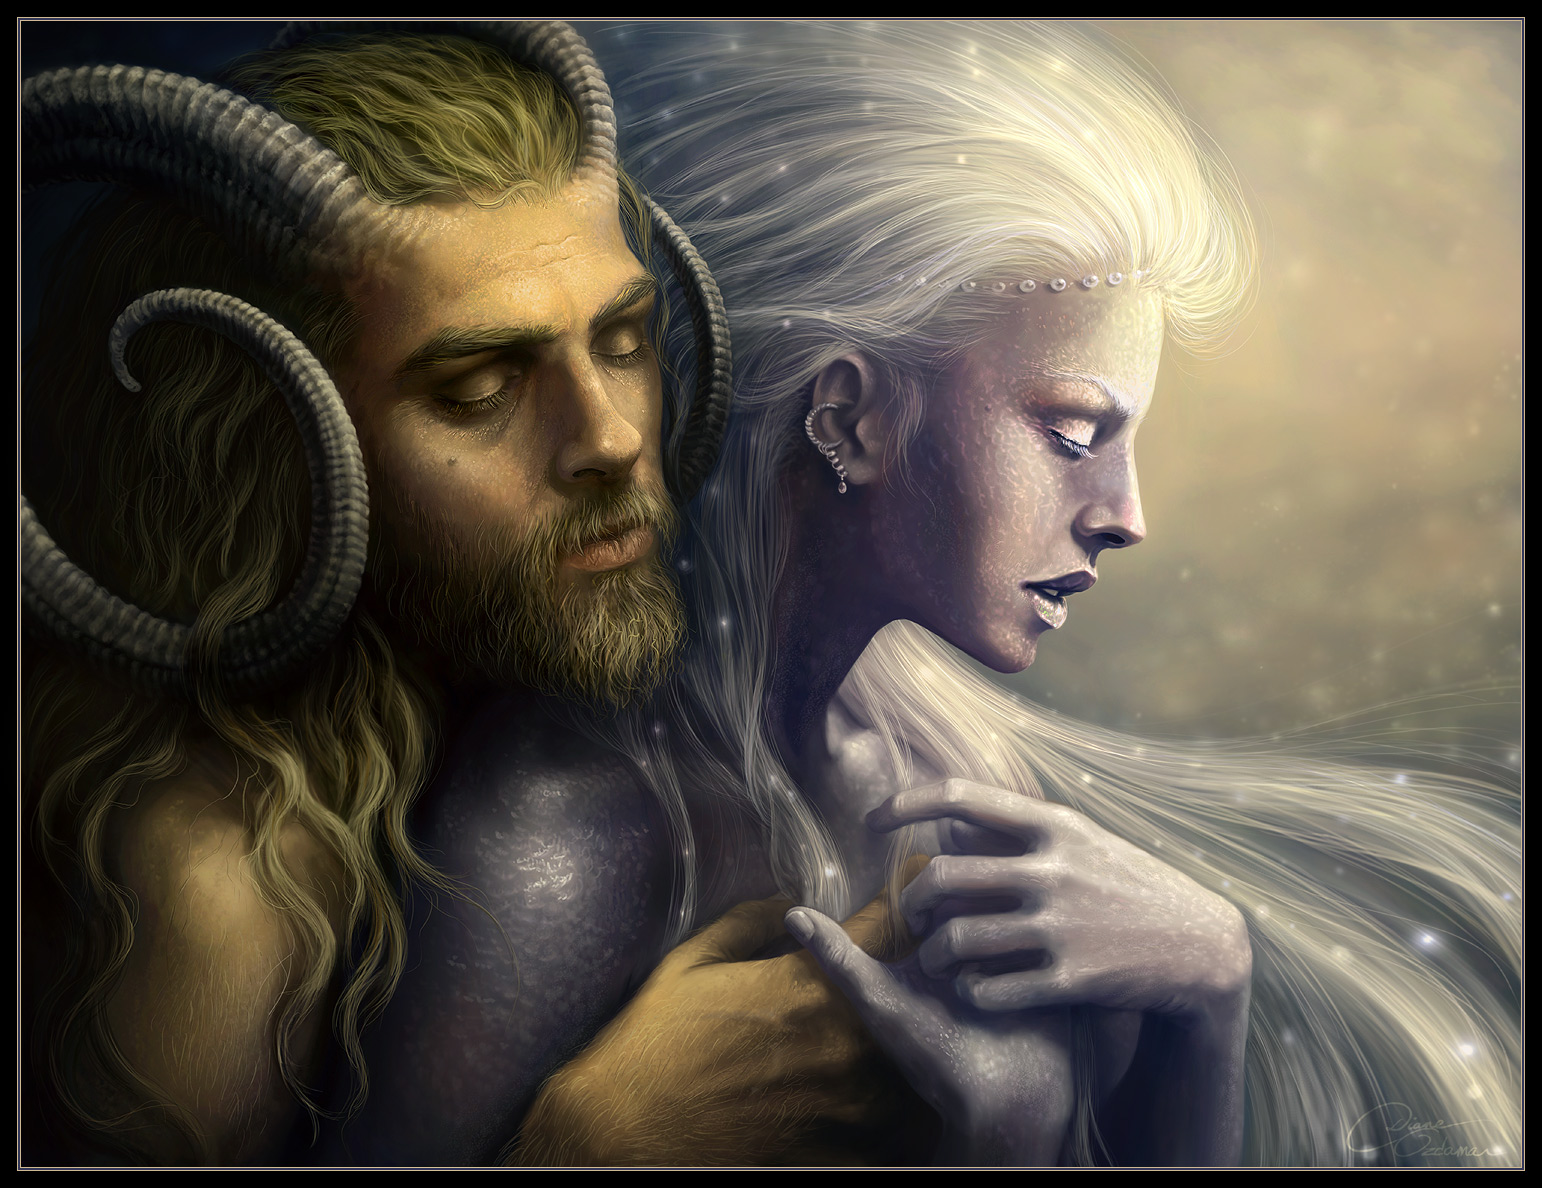 God and Goddess(Pan and Selene)